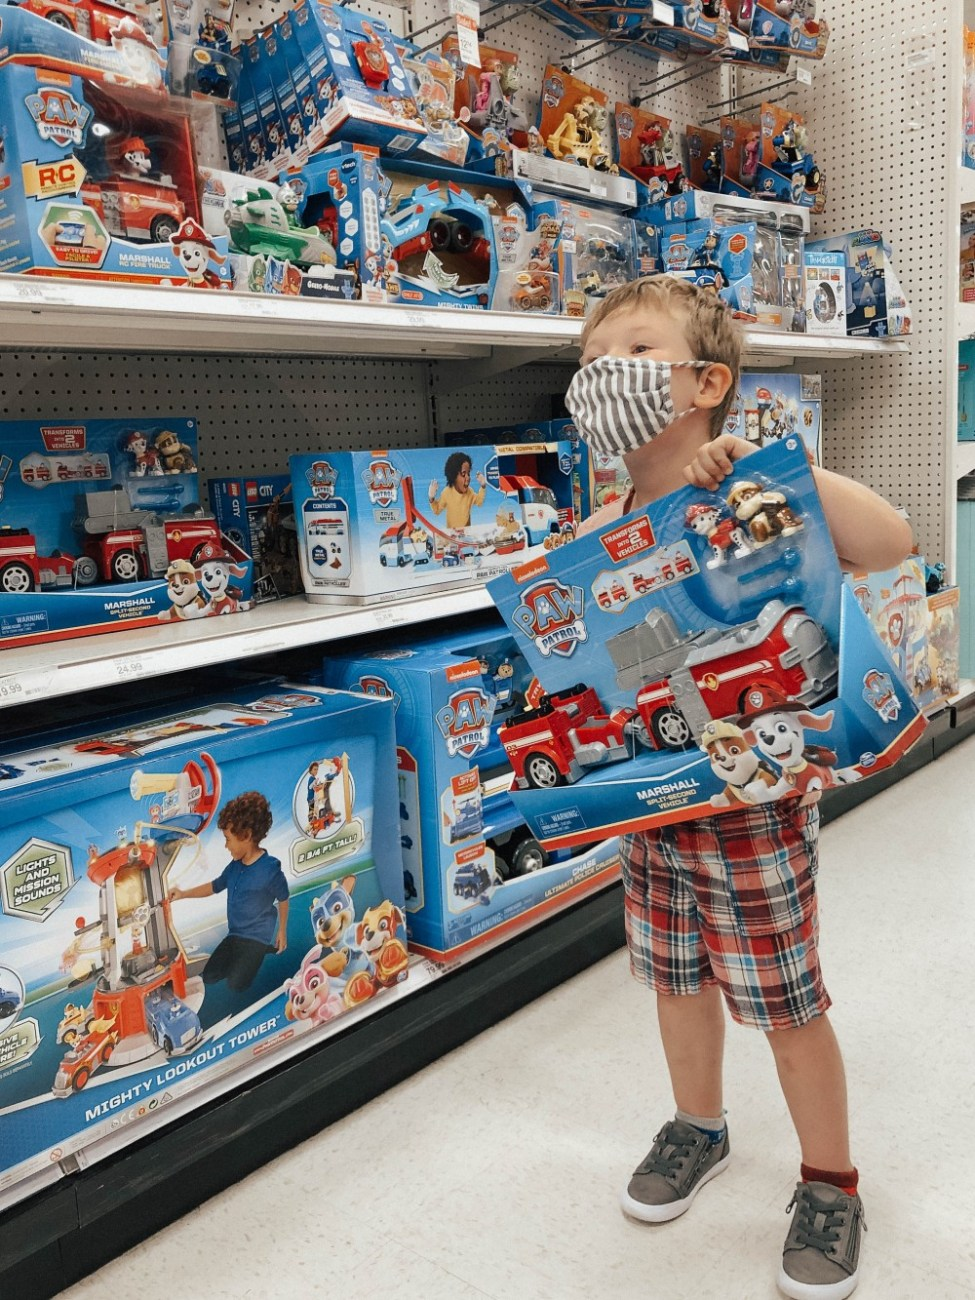 Sharing a major parenting tip to help stop in-store meltdowns from occurring when you can't buy your toddler a toy they want. Click on over to read the post! #parentingtip #parentingwin #toddlertips #raisingkids